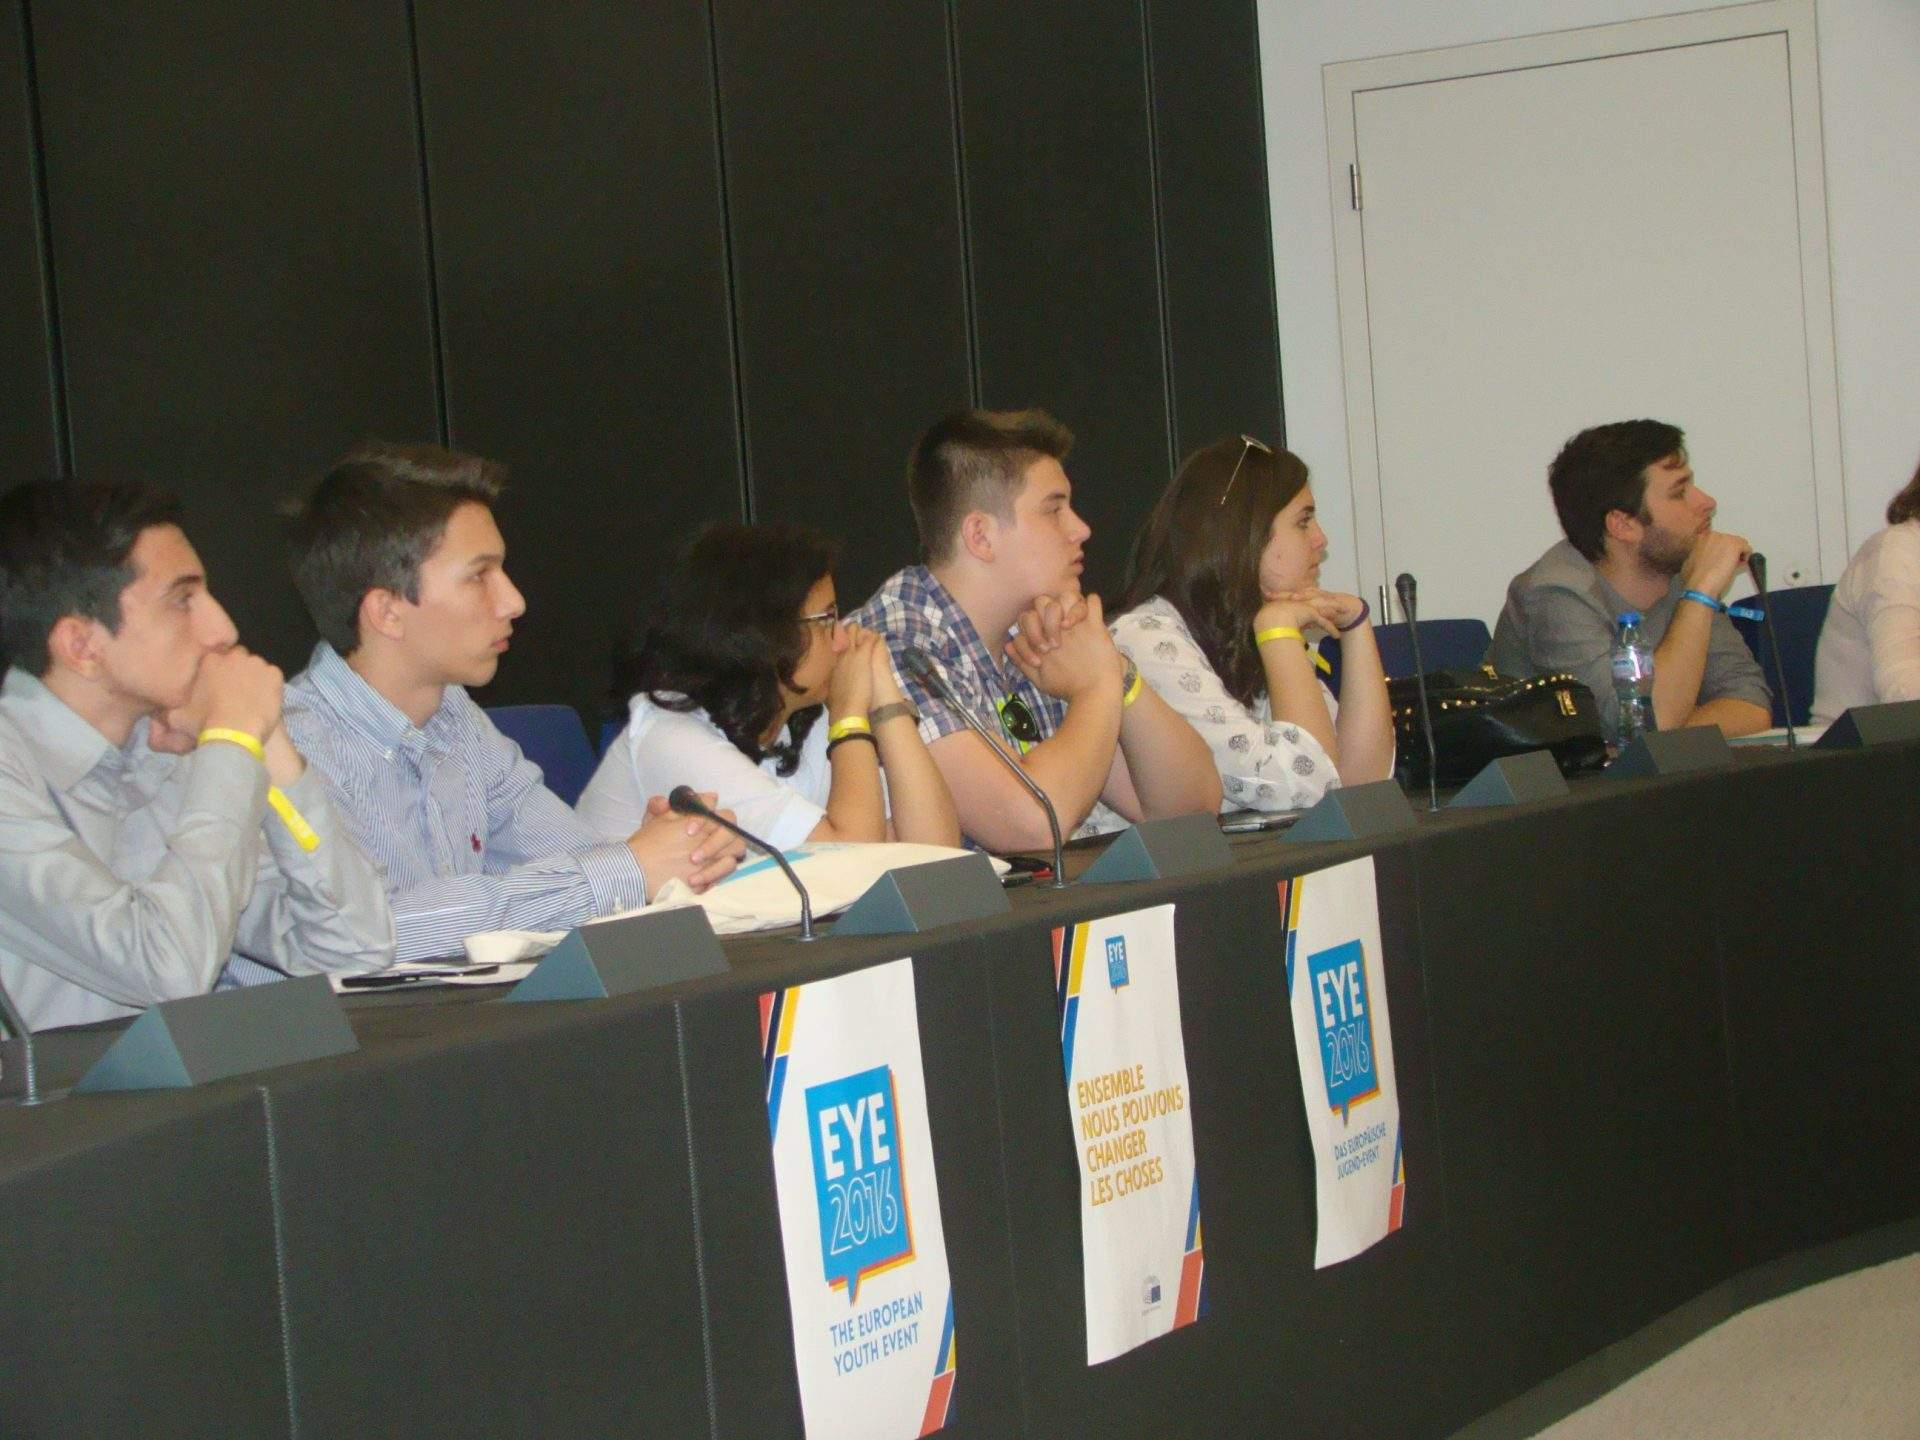 ECAS Hosts A Workshop On E-participation At The European Youth Event